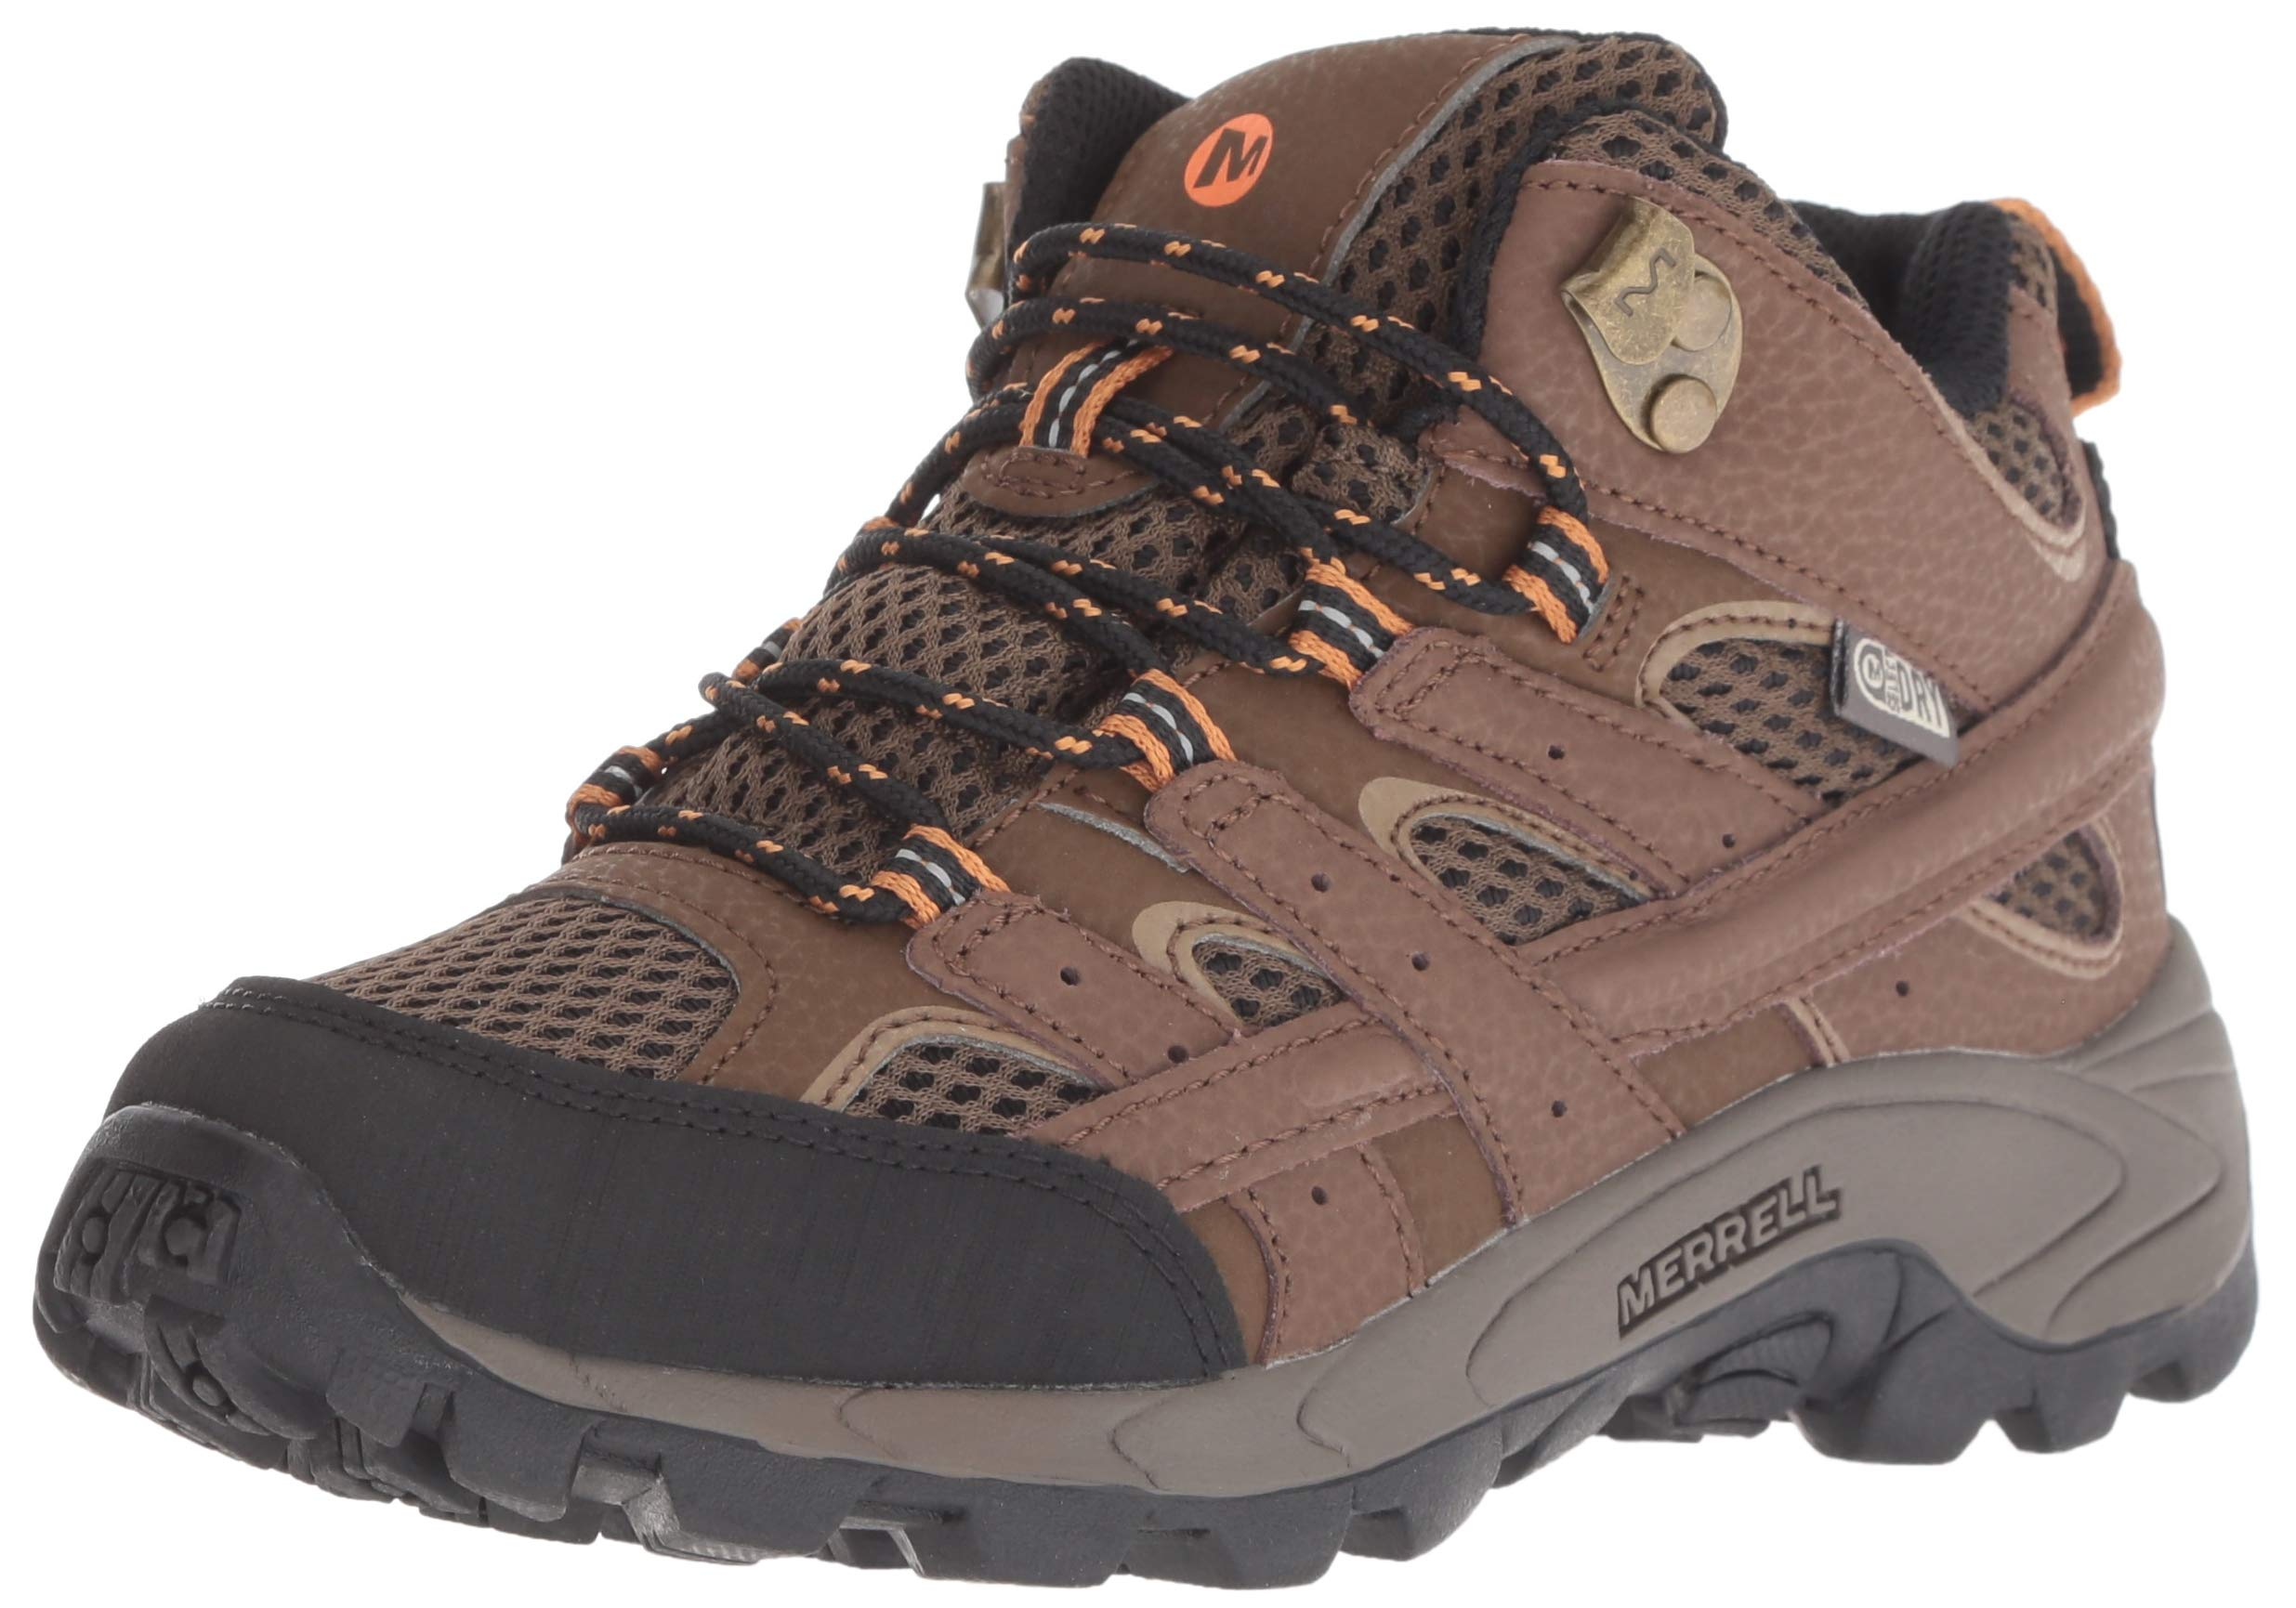 Merrell Moab 2 Mid Waterproof Boot Big Kid 3 Earth